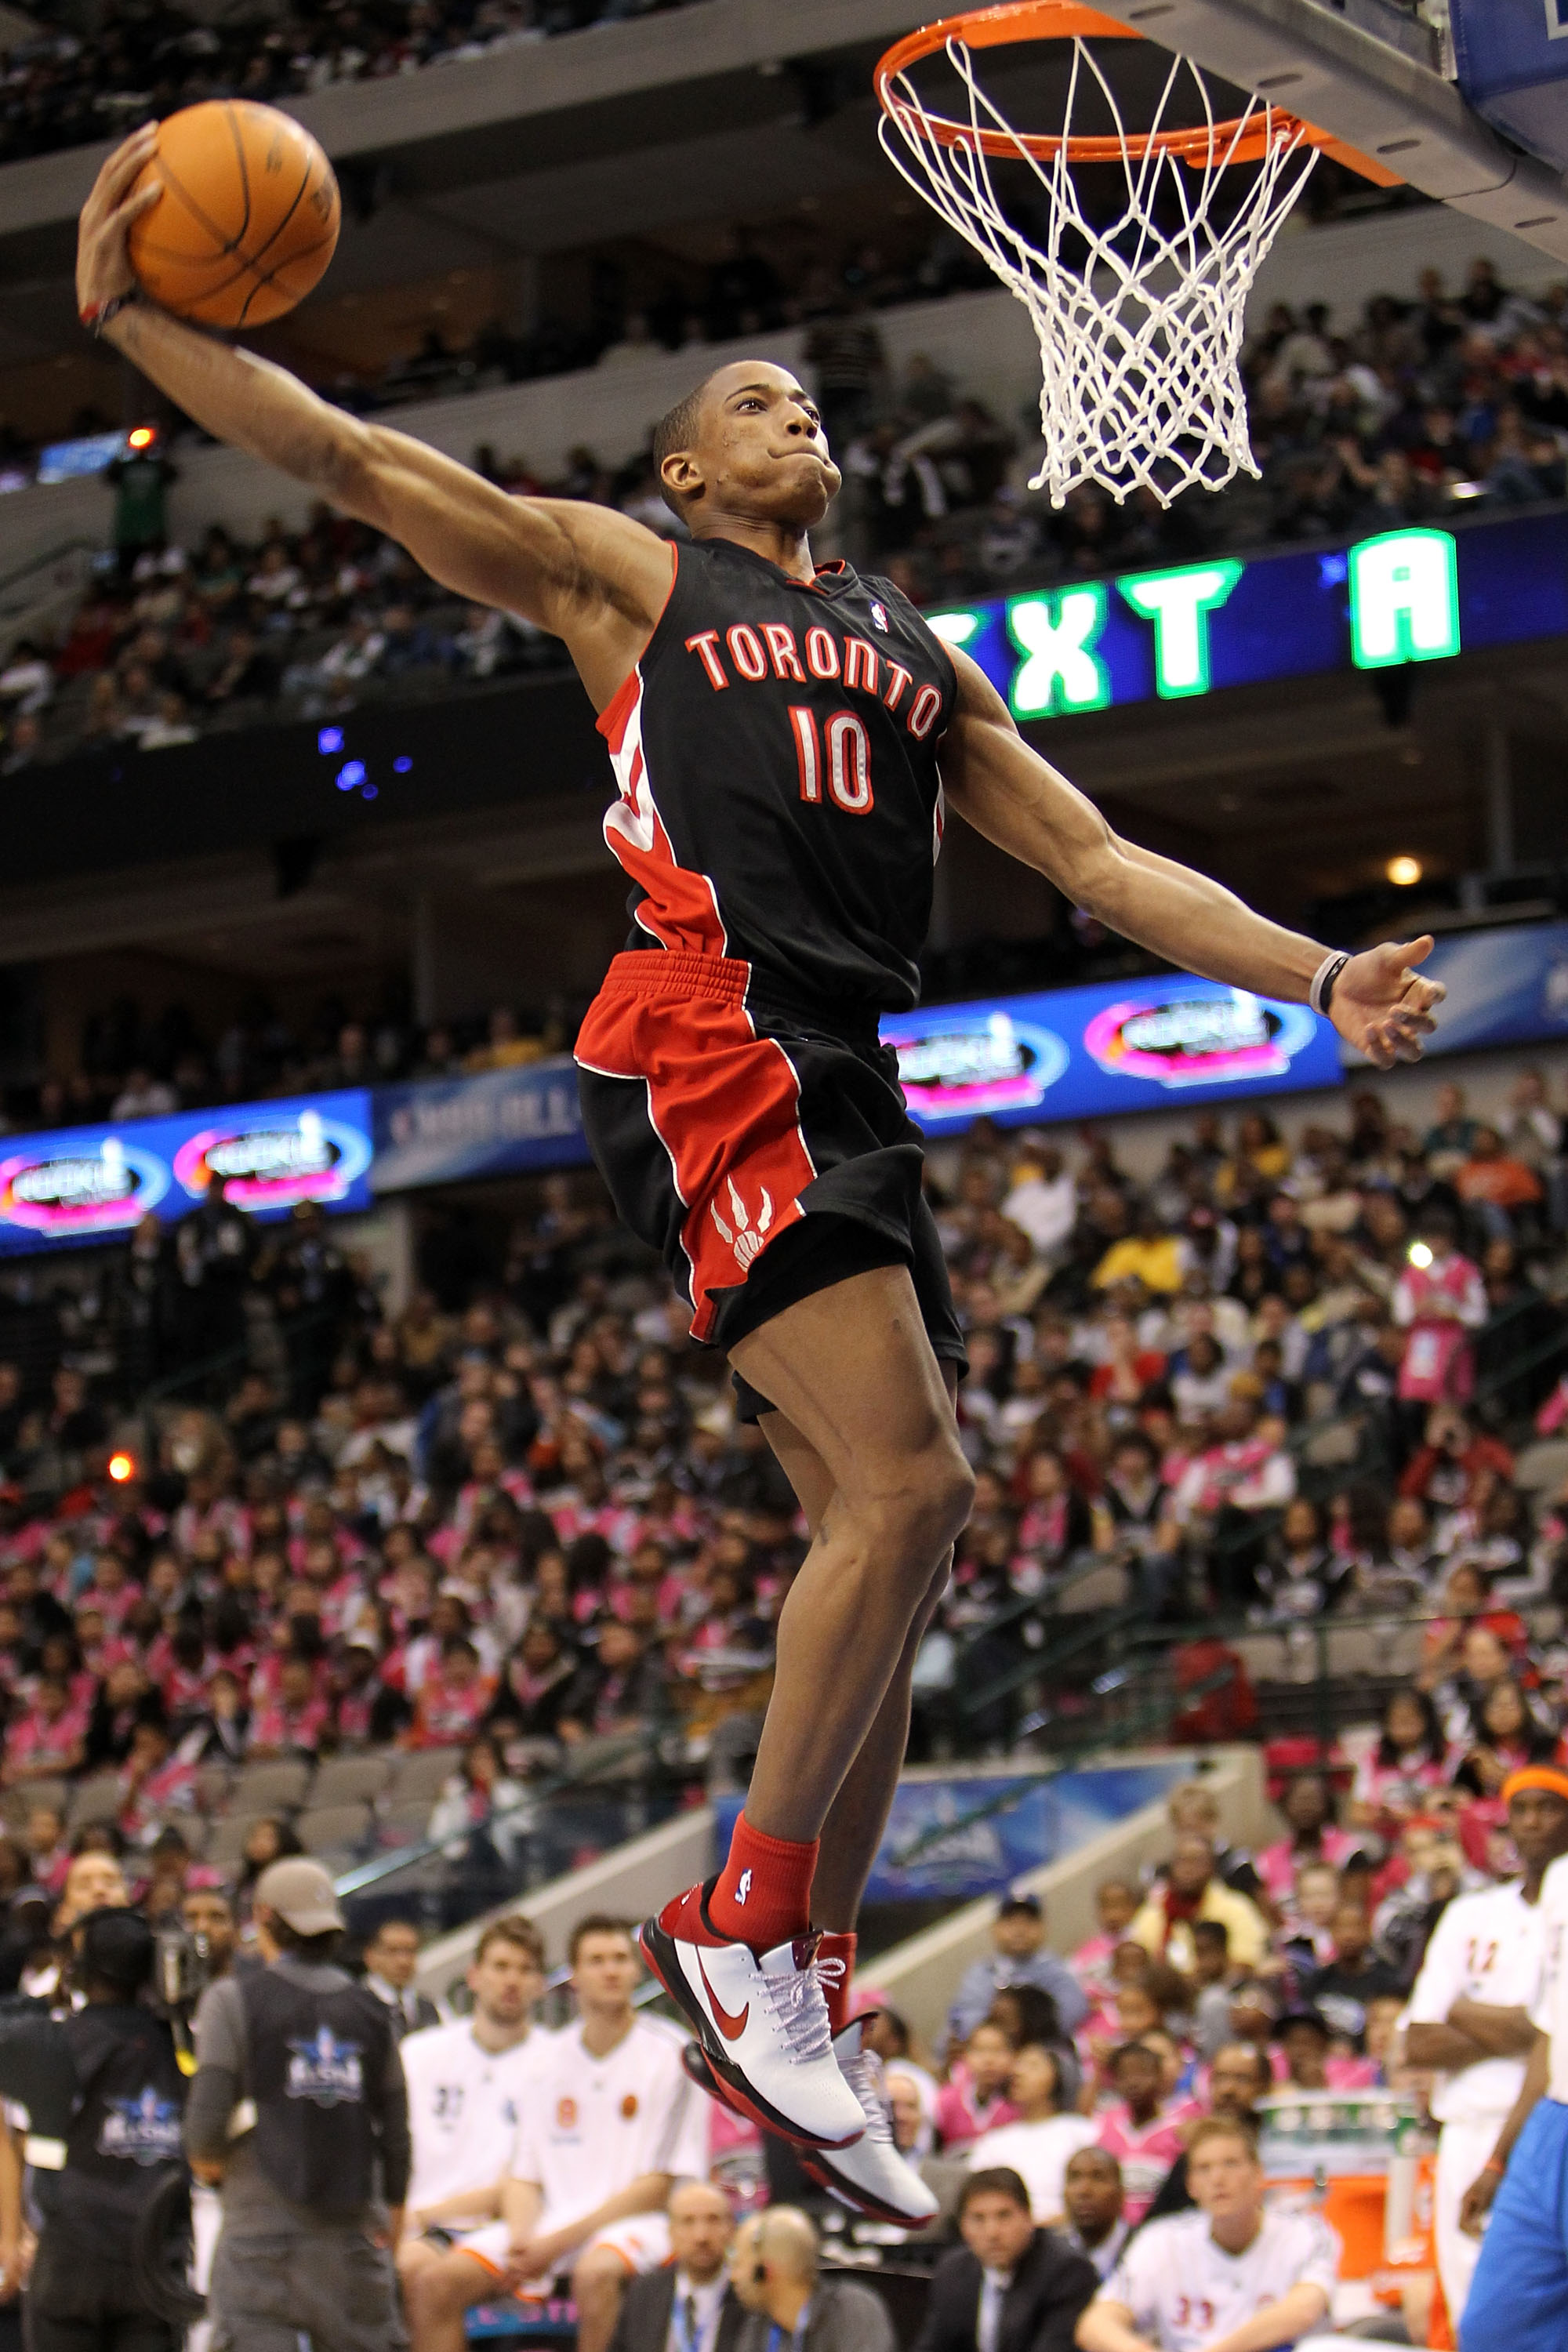 DALLAS - FEBRUARY 12:  DeMar DeRozan #10 of the Toronto Raptors shoots during the slam dunk contest at held at halftime during the T-Mobile Rookie Challenge & Youth Jam part of 2010 NBA All-Star Weekend at American Airlines Center on February 12, 2010 in